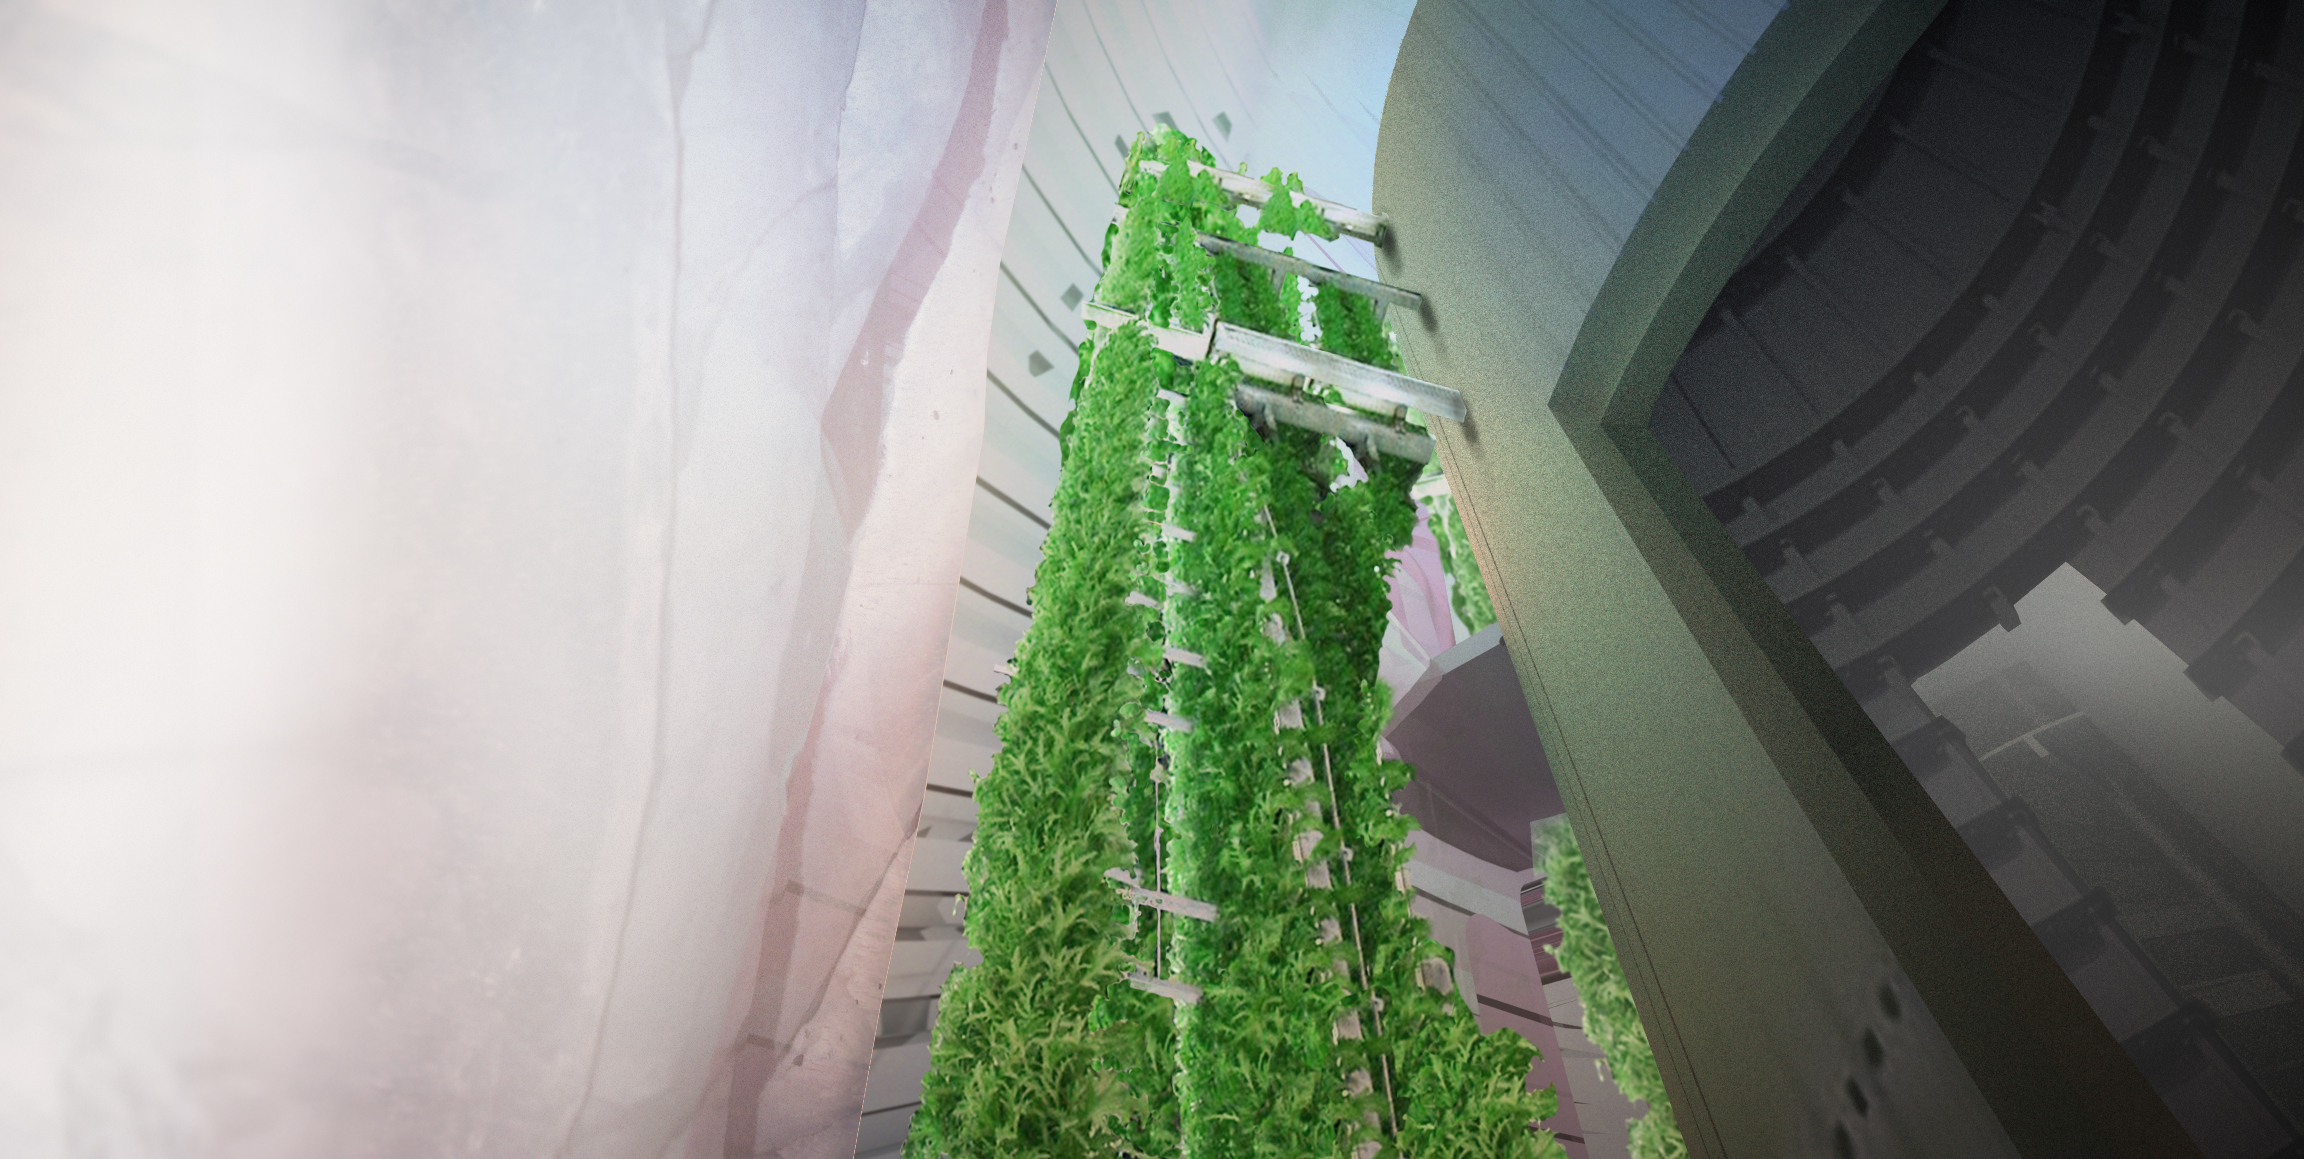 Vertically growing hydroponic gardens serve as the recreational 'parks' within the habitat, disrupting the alien monotony of Mars' landscape while also supplementing the crew's food and oxygen.